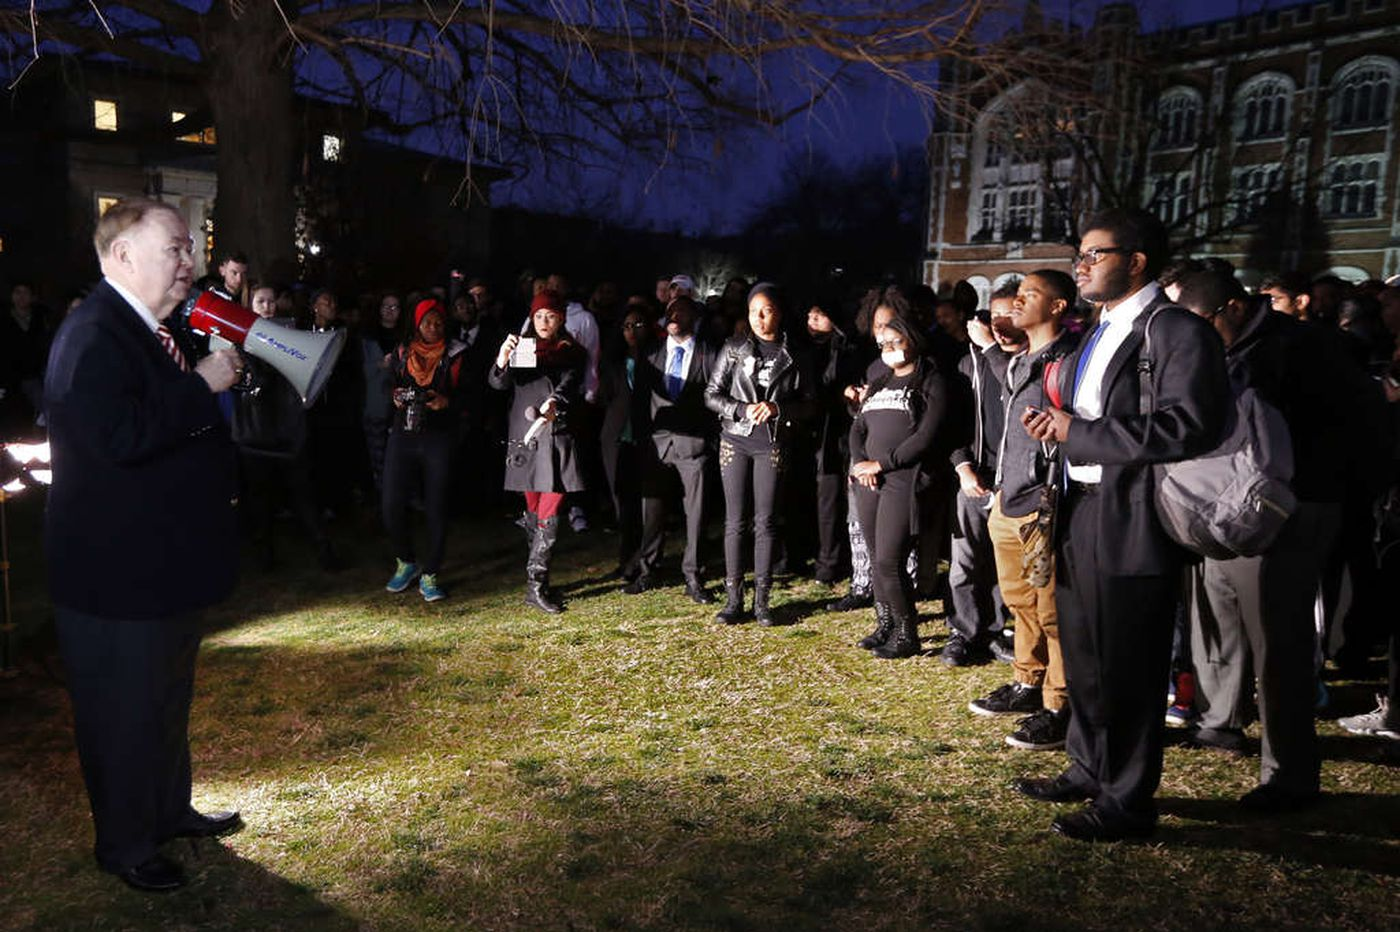 Okla. university acts after racist chant